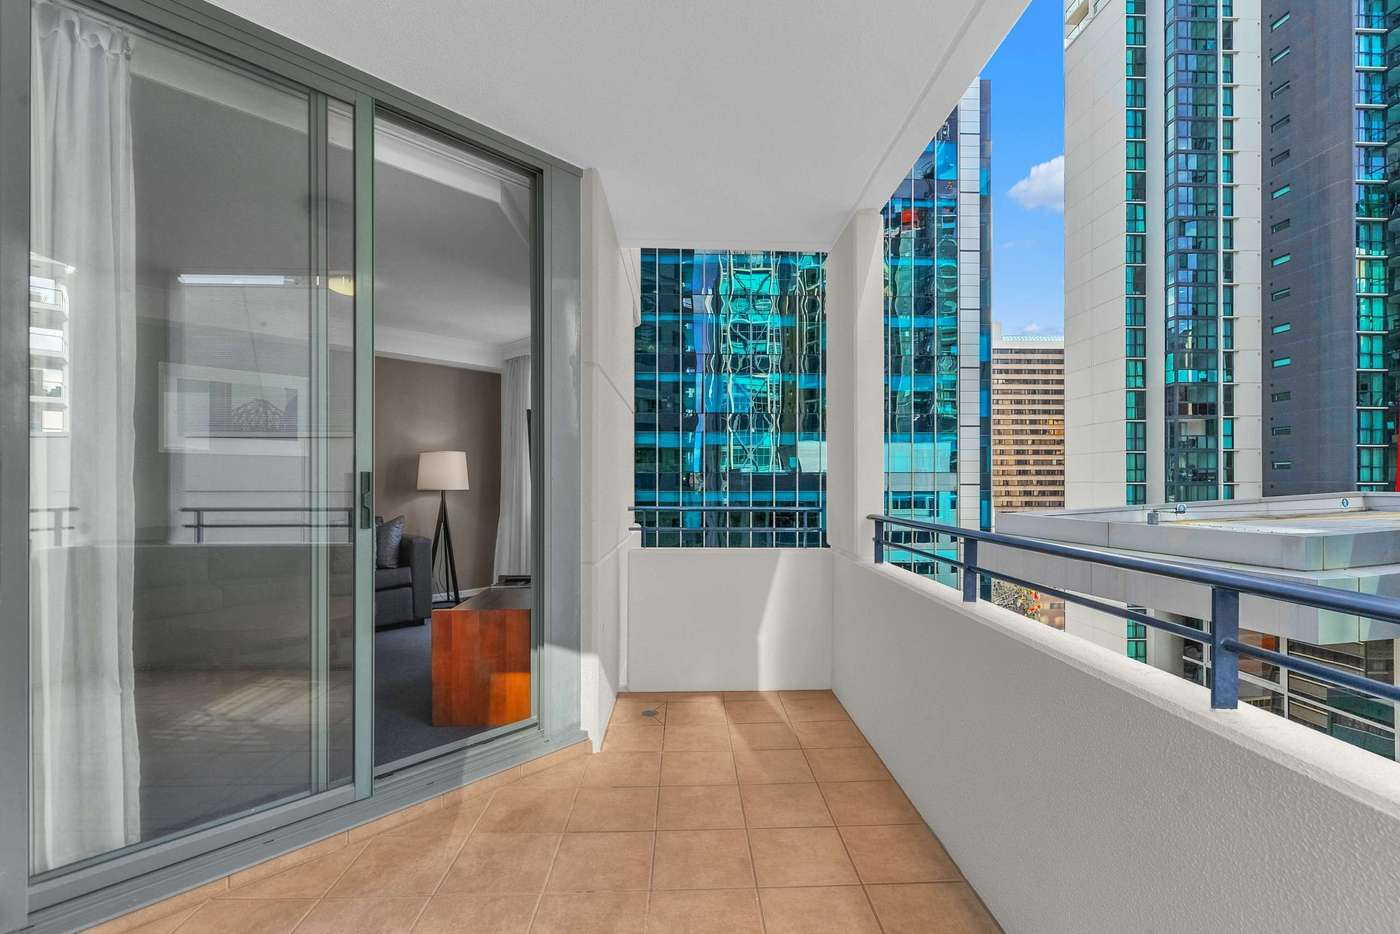 Main view of Homely apartment listing, 2105/95 Charlotte Street, Brisbane City QLD 4000